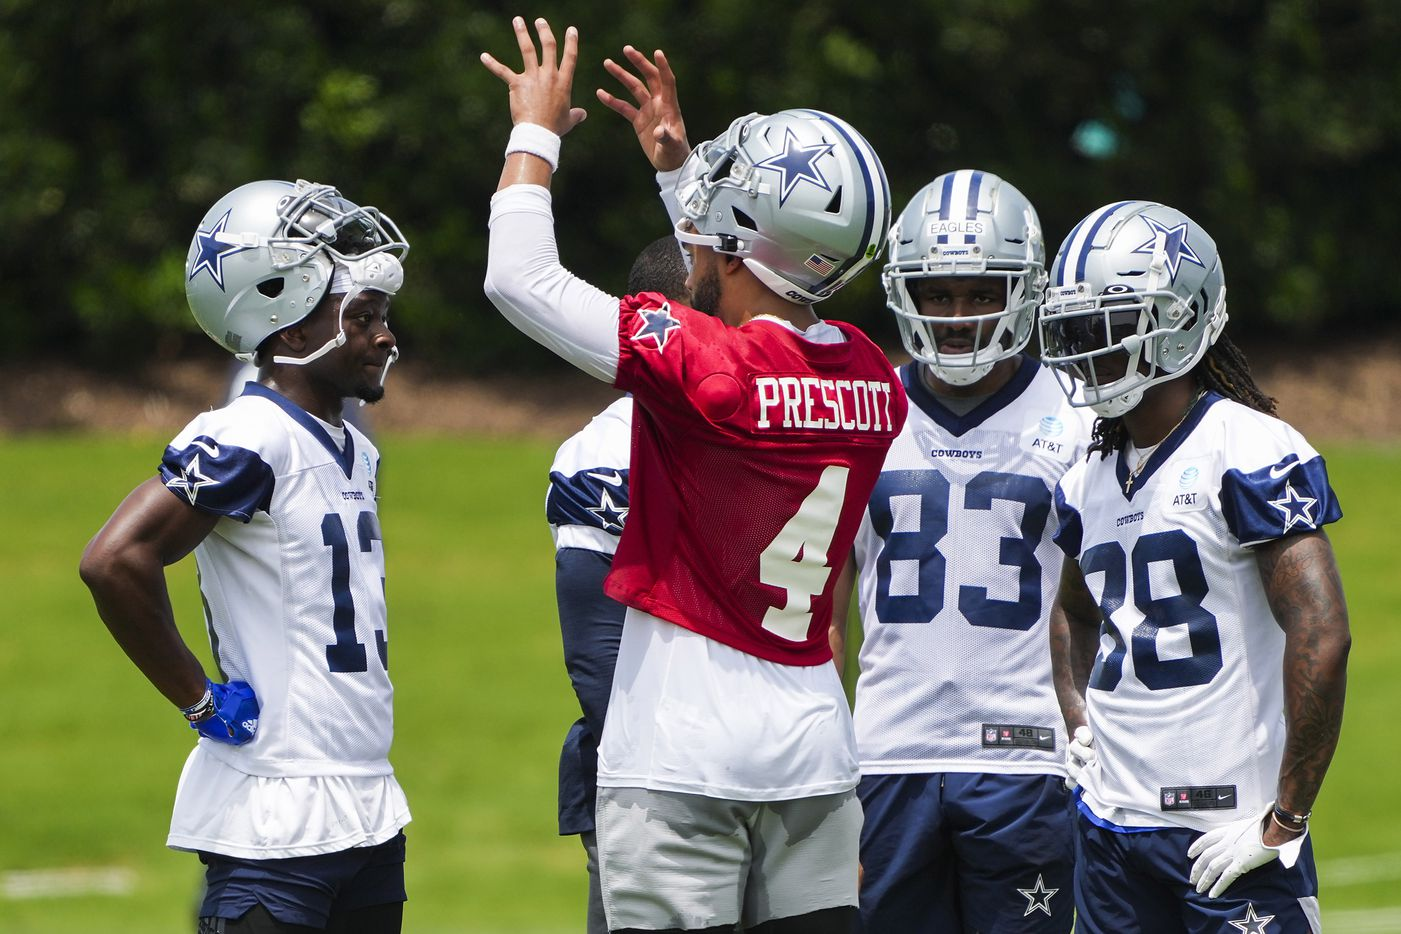 Dallas Cowboys quarterback Dak Prescott (4) talks with wide receivers,  Michael Gallup (13), Amari Cooper, Brennan Eagles (83)  CeeDee Lamb (88) during a minicamp practice at The Star on Tuesday, June 8, 2021, in Frisco. (Smiley N. Pool/The Dallas Morning News)